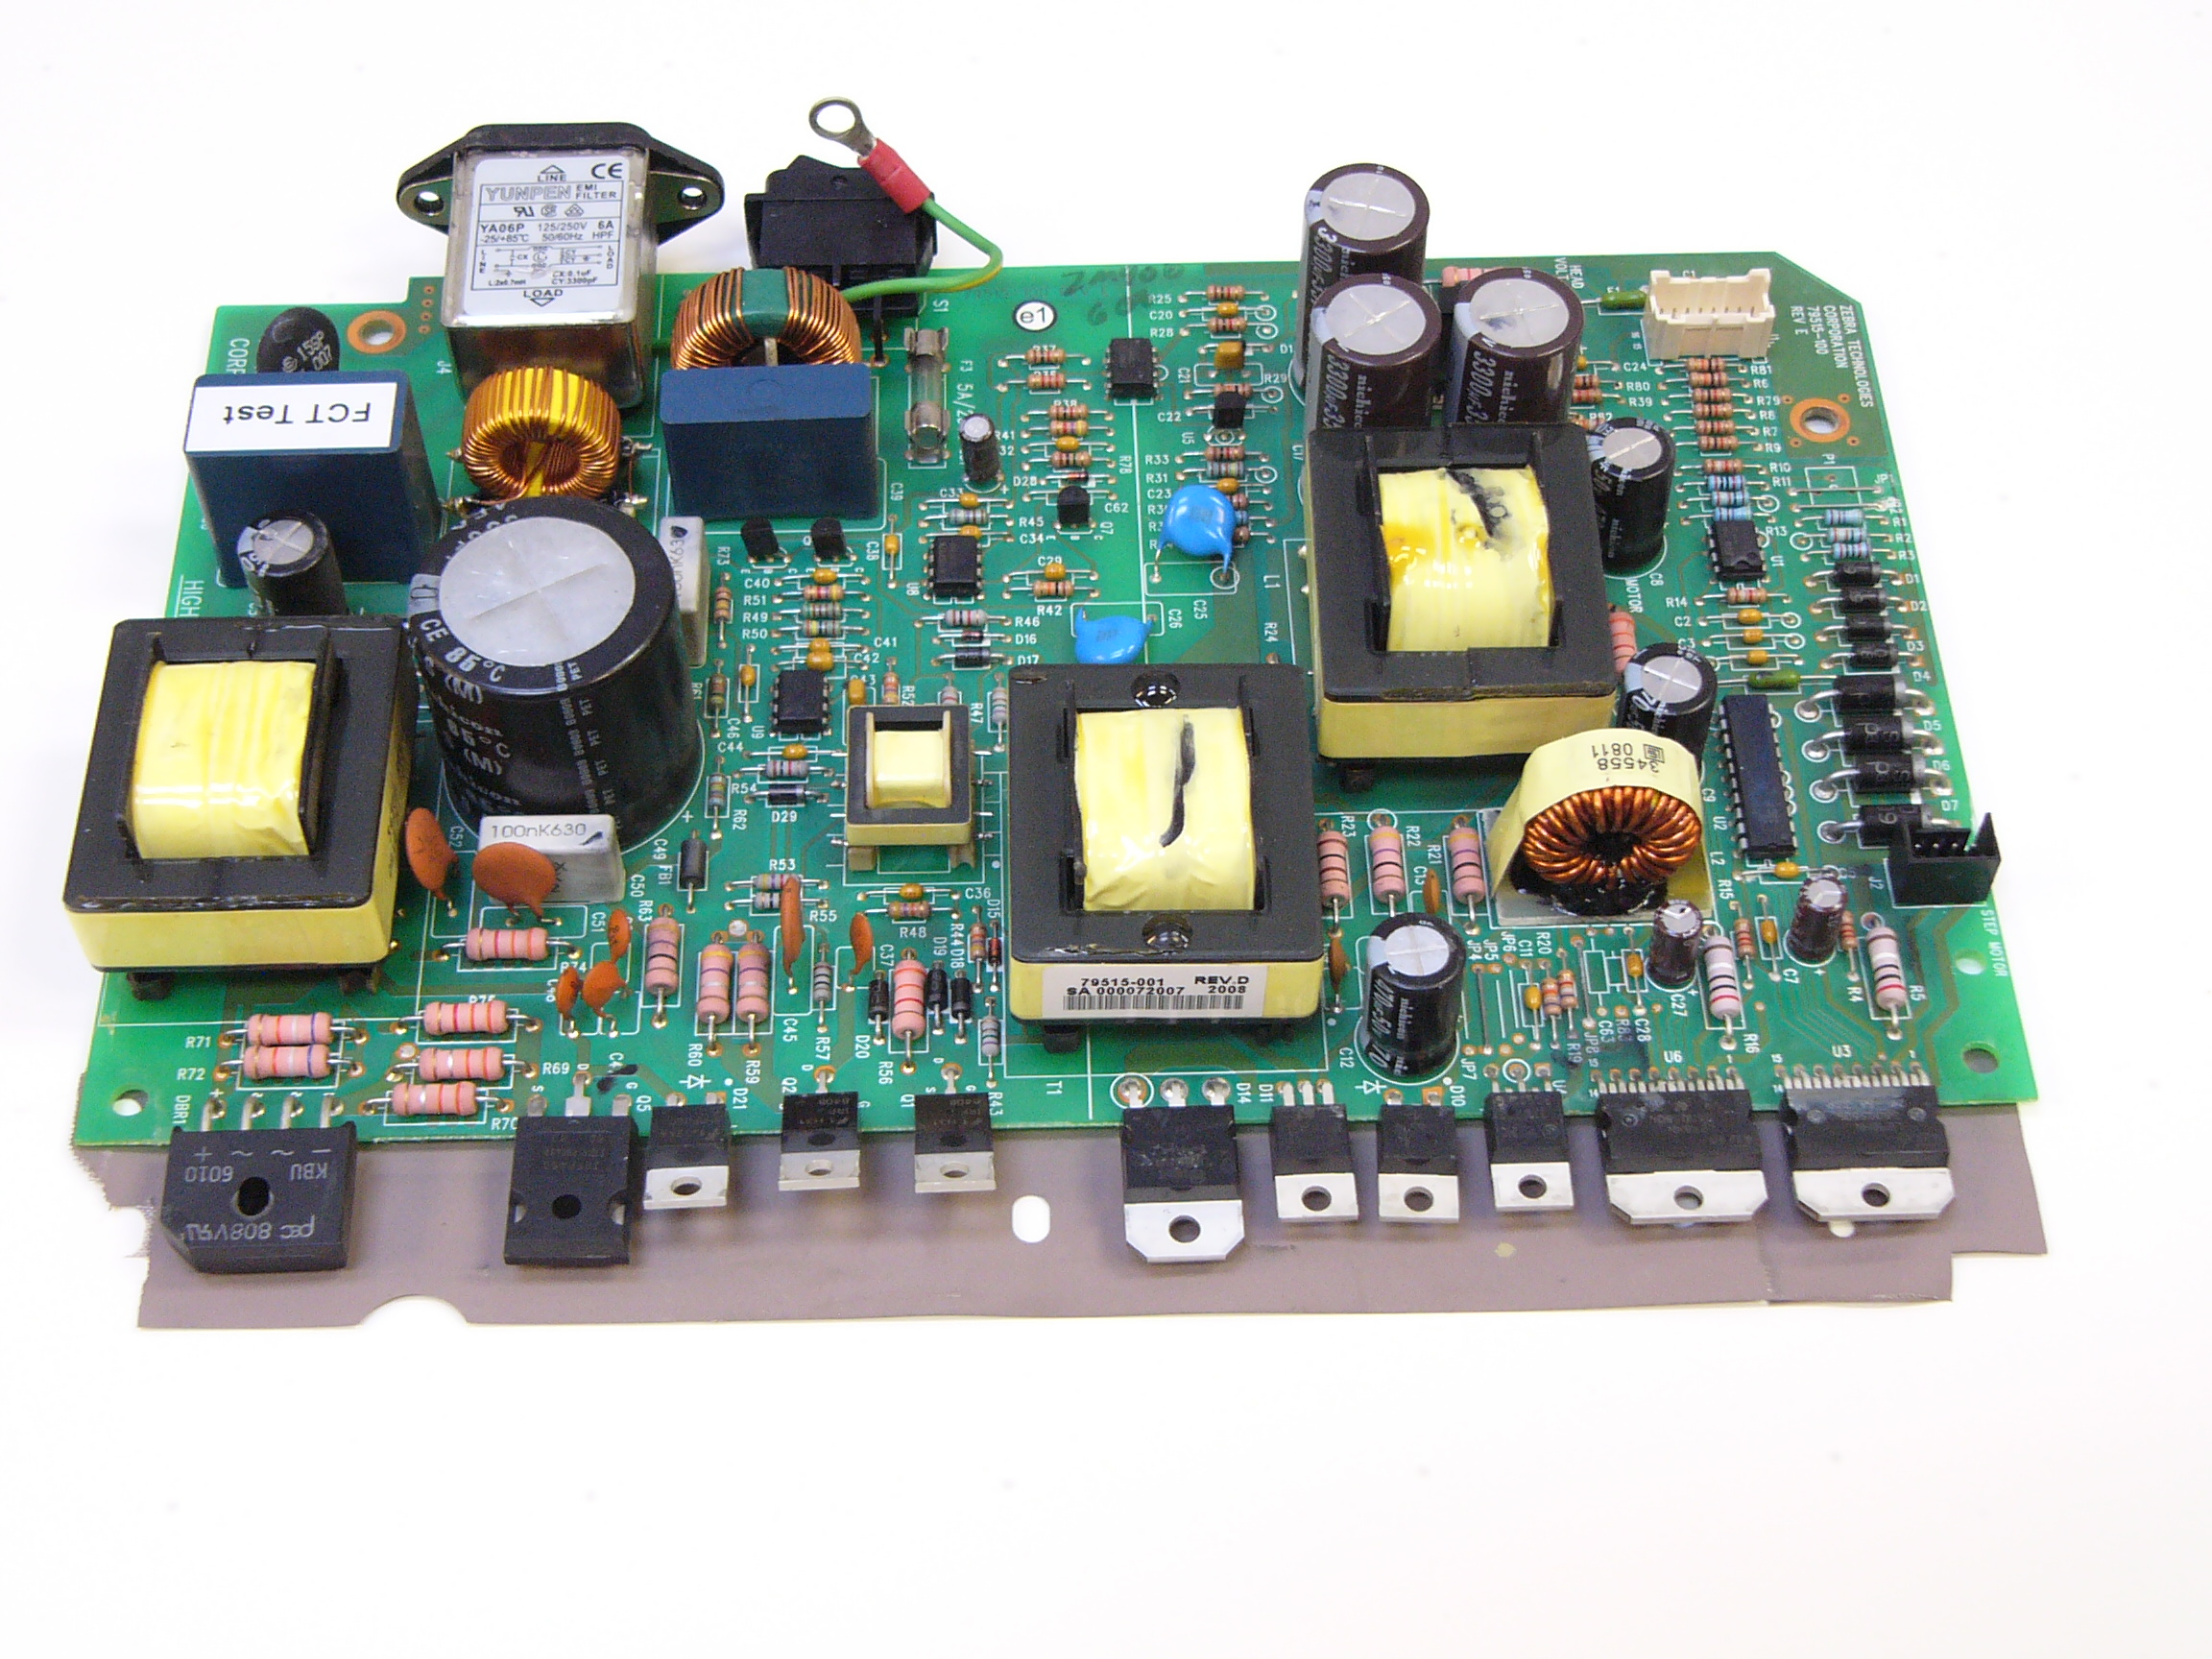 79515-001 -  - 79515-001, Power Supply, Zebra ZMx00 Series, ZM400, ZM600